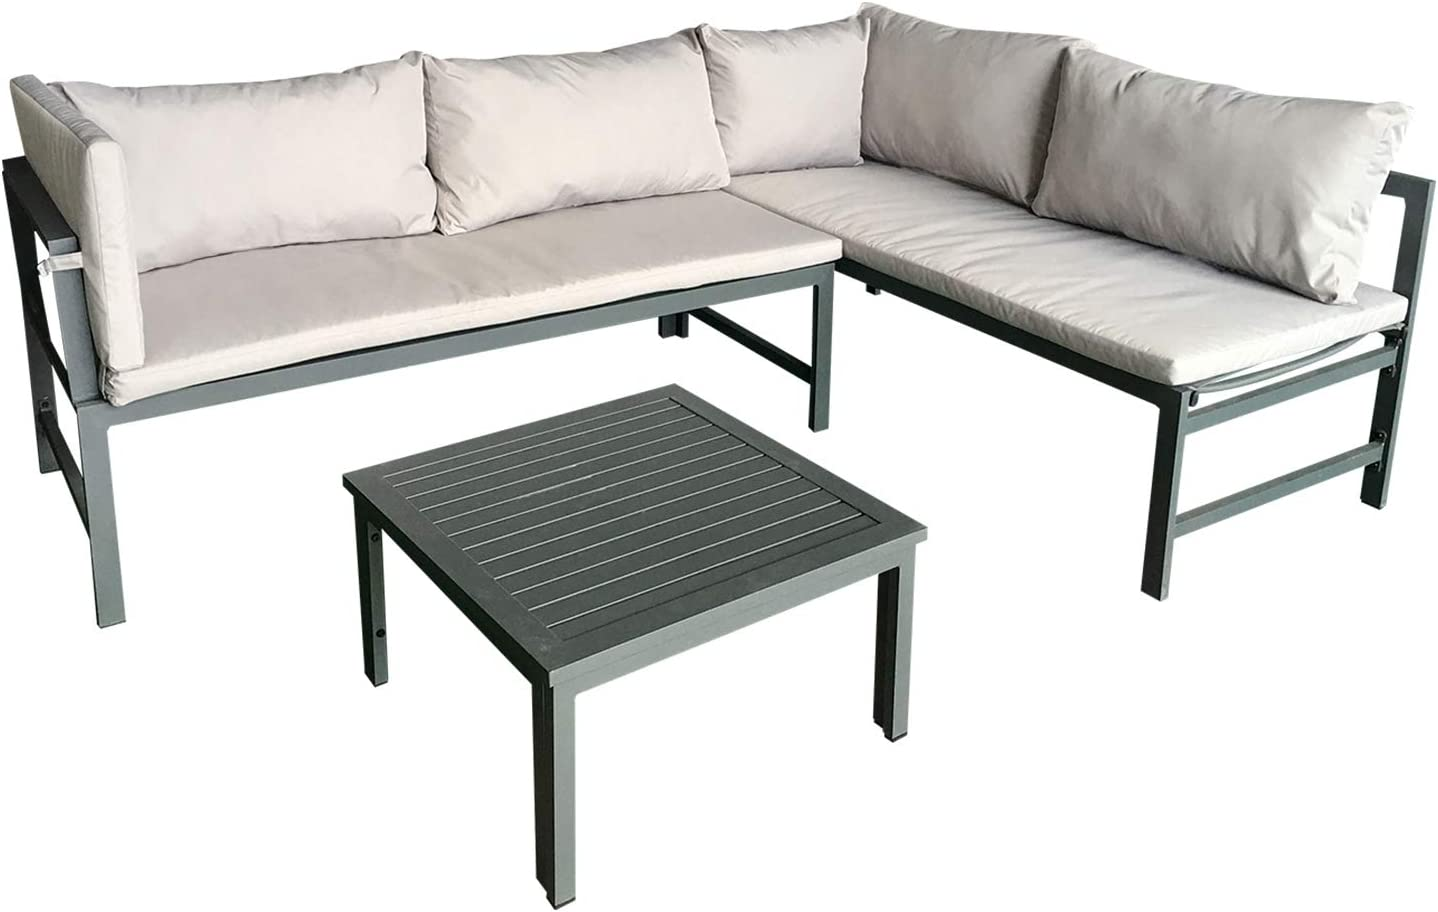 AmazonBasics Aluminum Outdoor L-Shaped Sofa Lounge Set with Cushions and Table - Grey